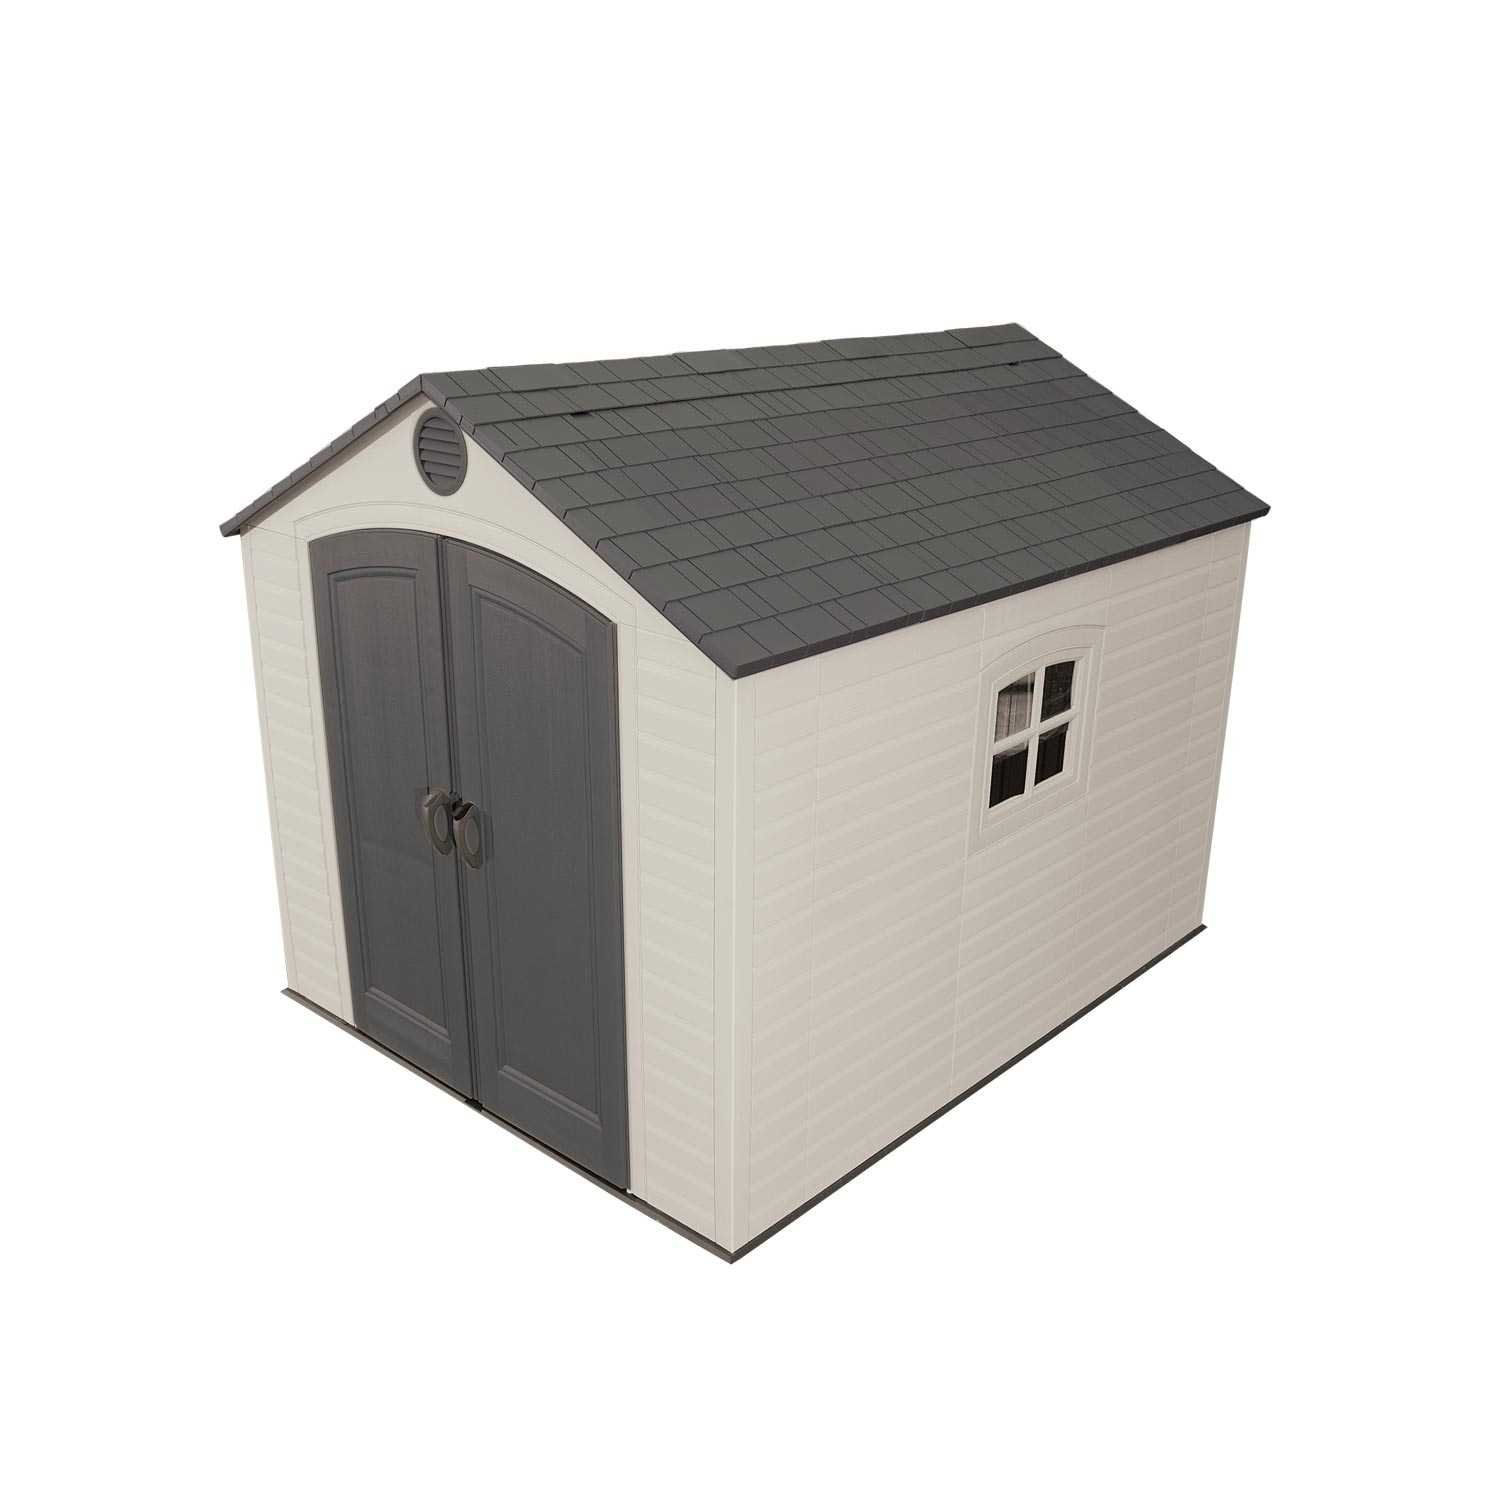 lowes interior shed outdoors duramax ft building resin storage pl actual vinyl sheds com products outdoor at common shop x